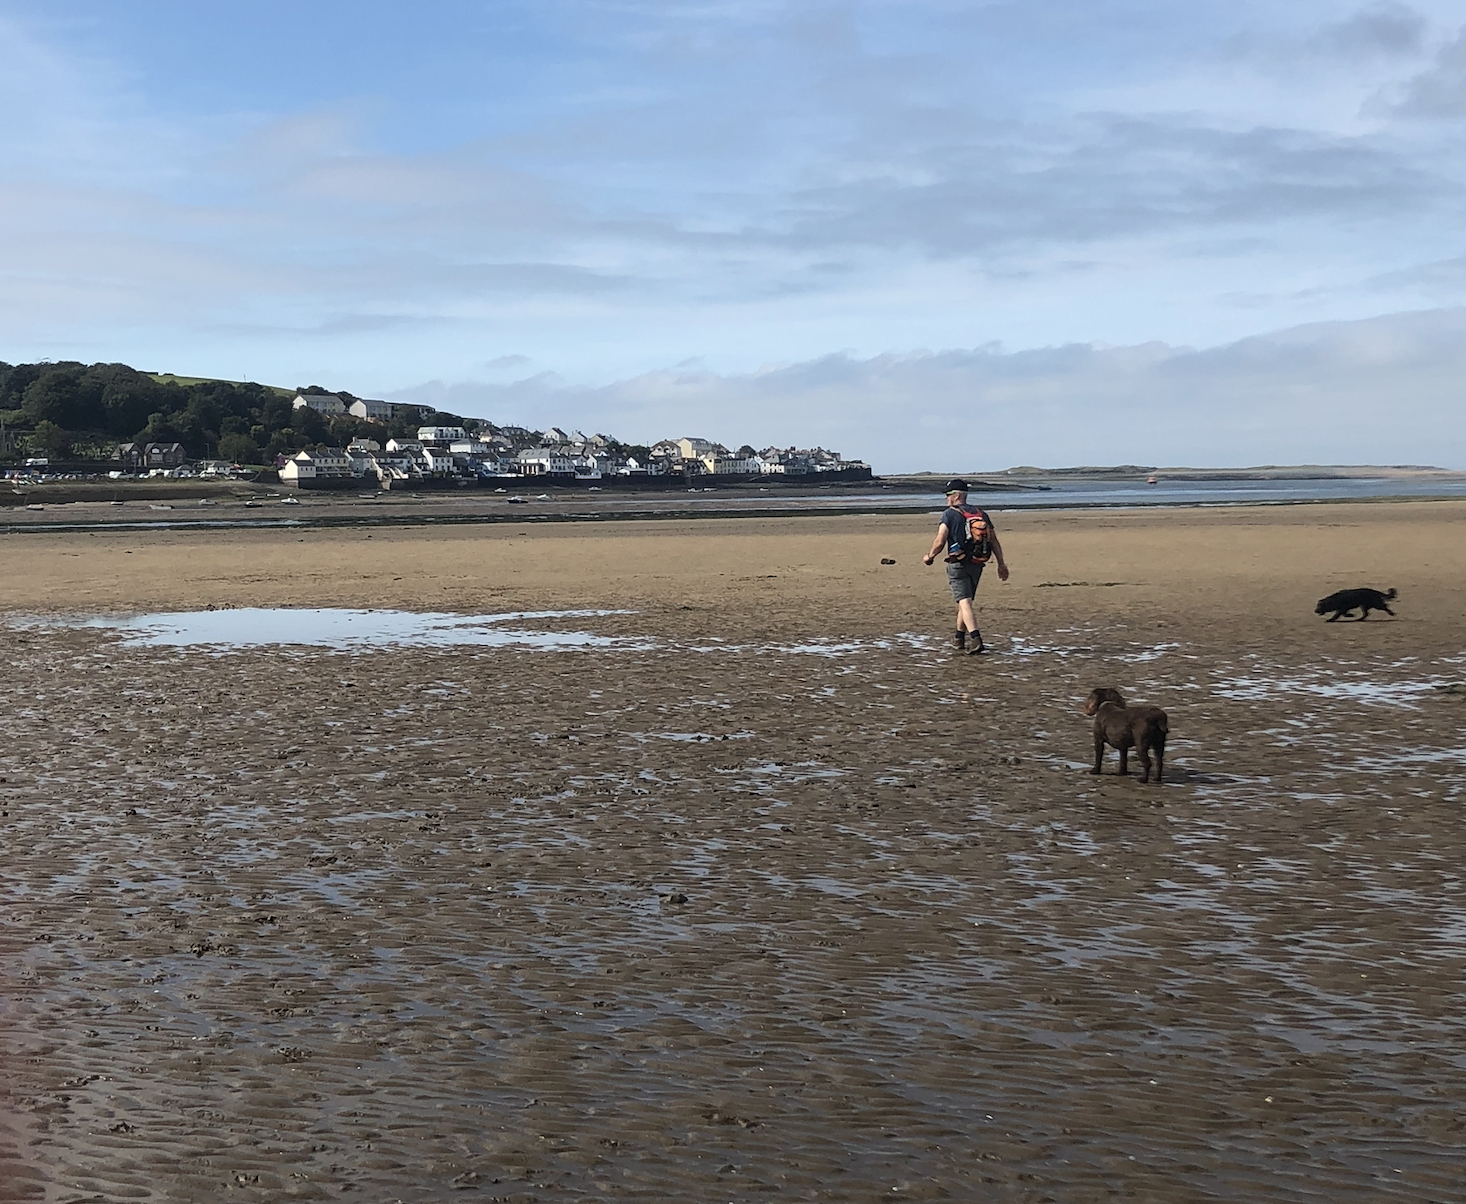 Walking the South West Coast Path from Barnstaple to Appledore and trying to cross the River Taw at low tide.